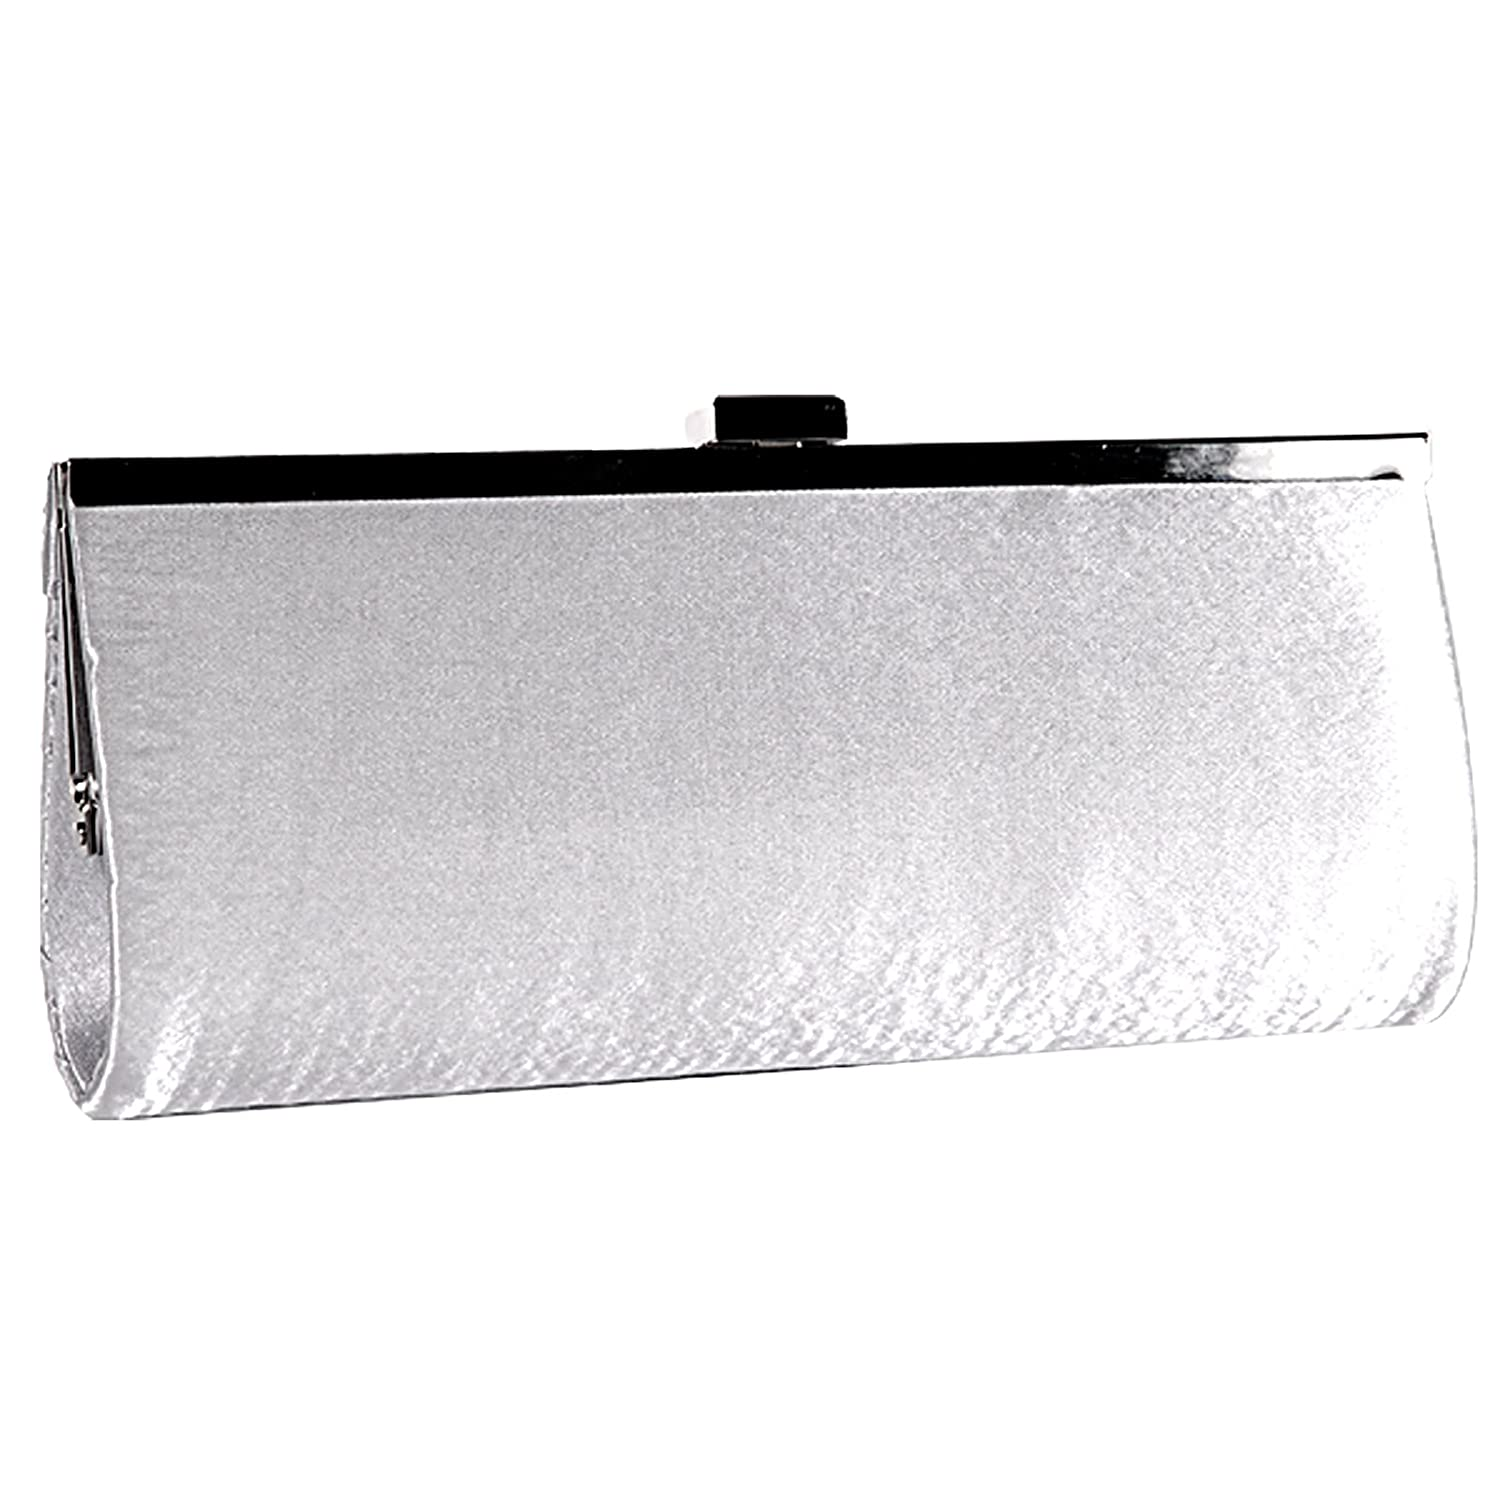 Surepromise Satin Crystal Diamante Evening Clutch Purse Prom Handbag Party Bridal: Handbags: Amazon.com